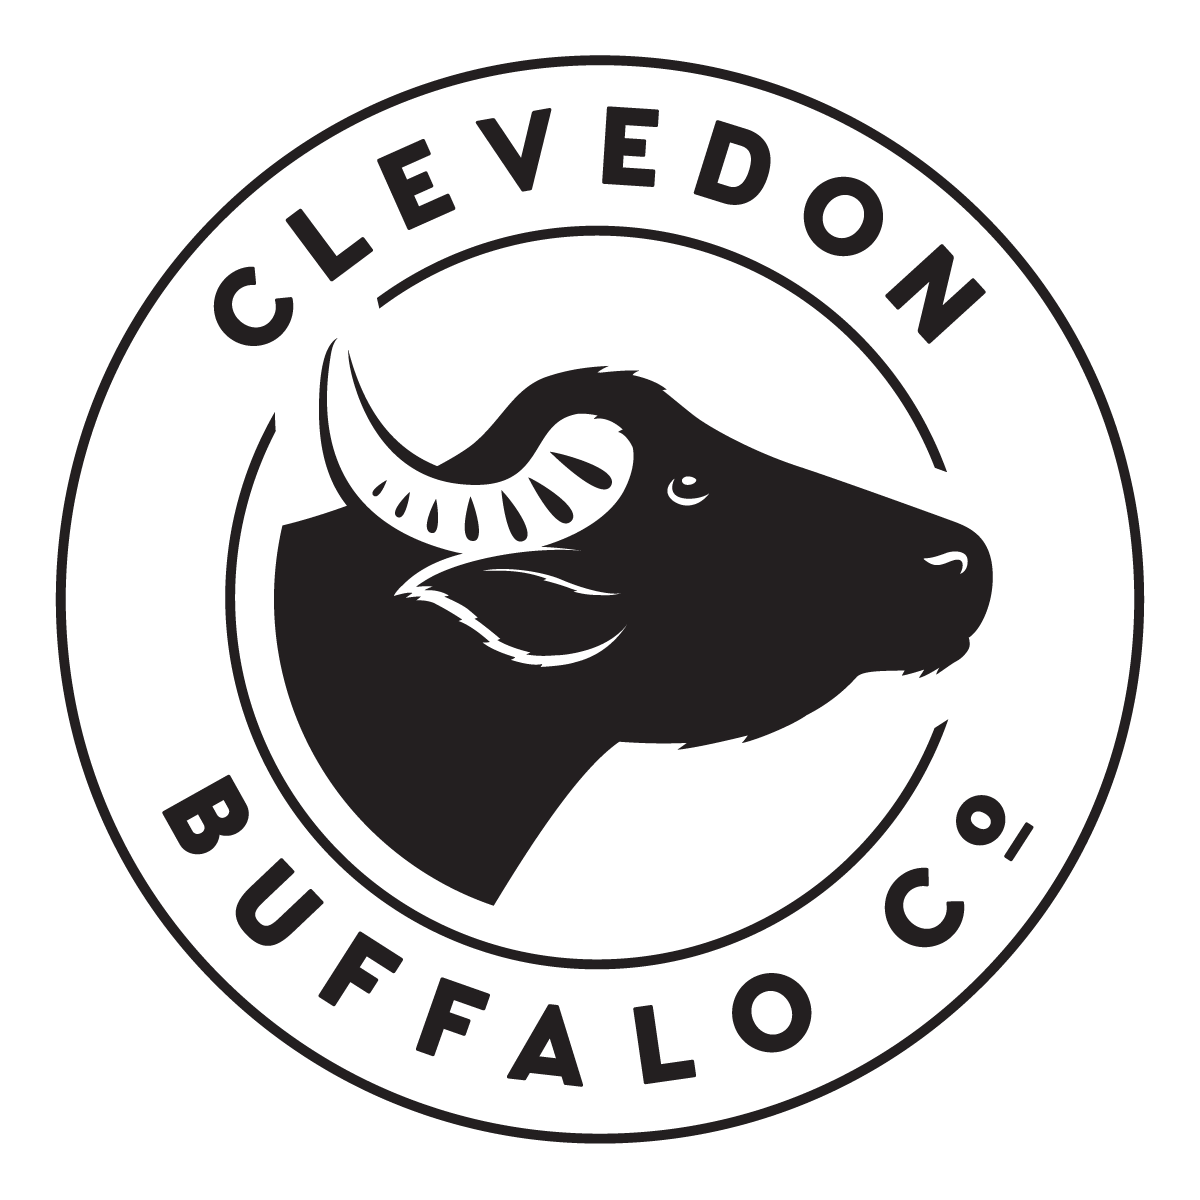 Pioneer clipart cow. Clevedon buffalo